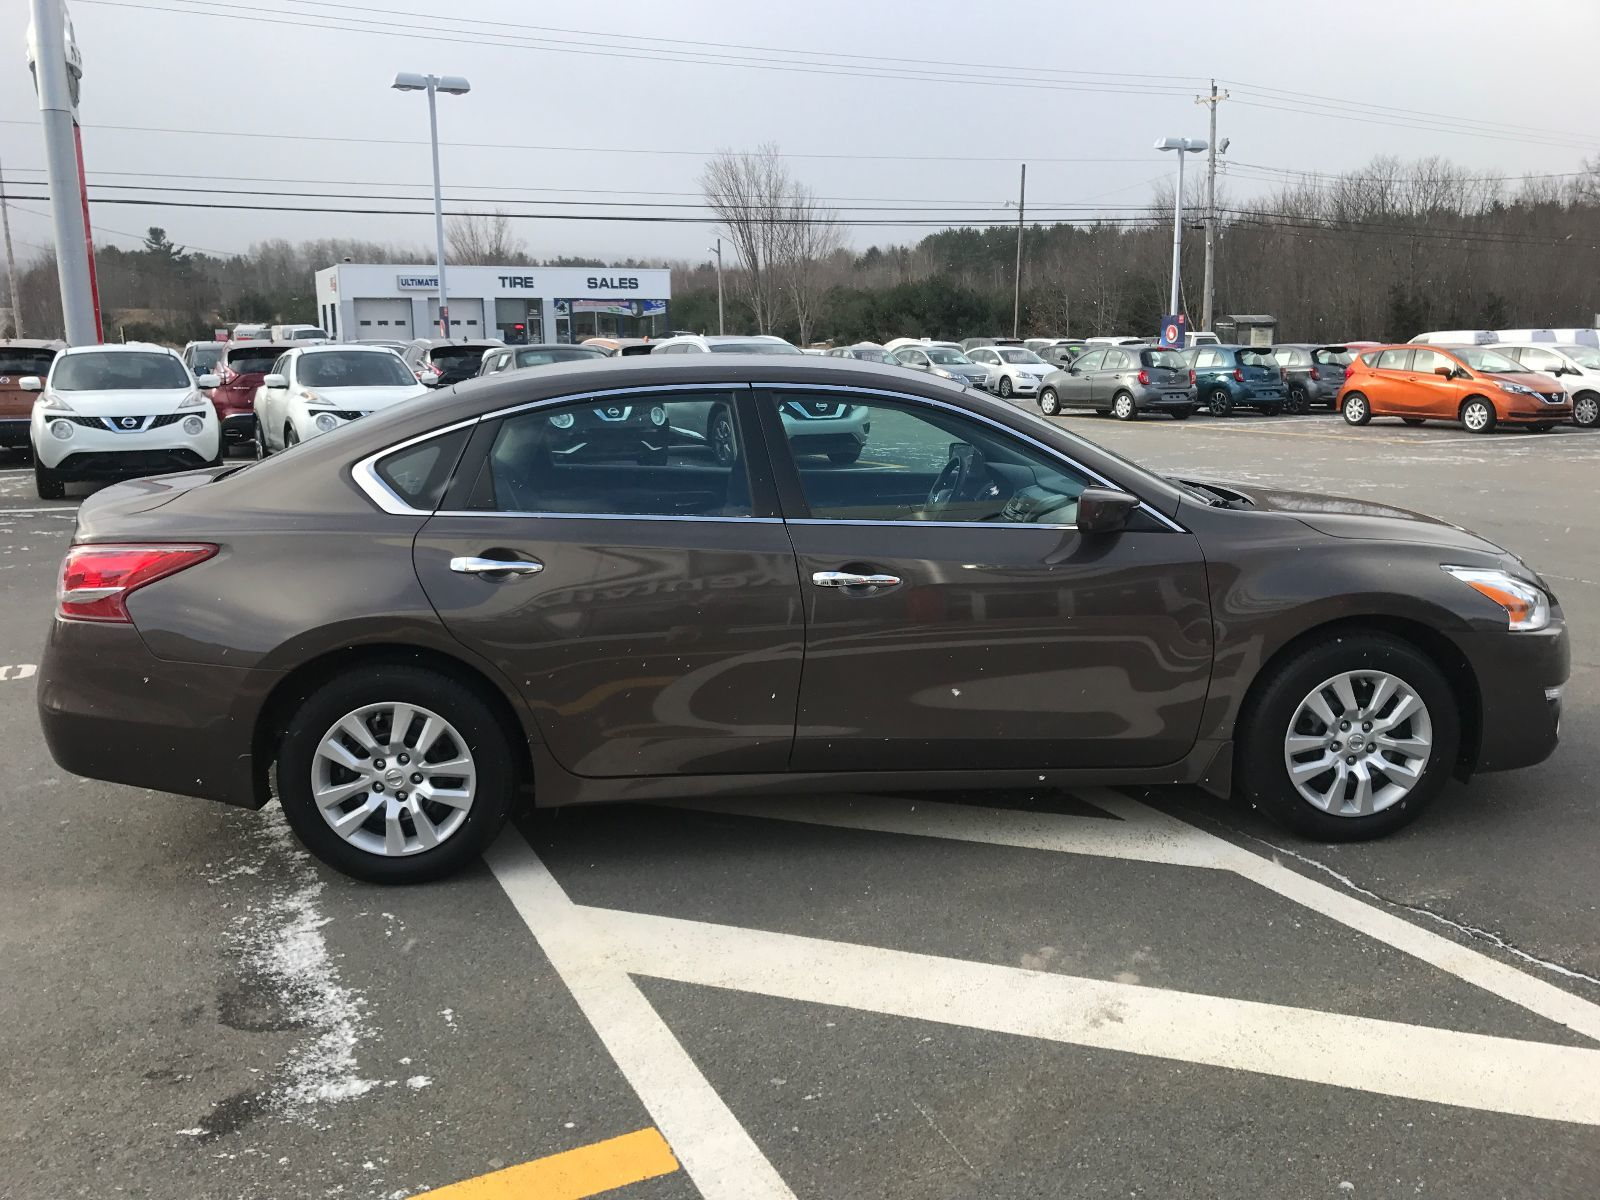 pin amp features nissan review edmunds for carenara com sale pricing used altima